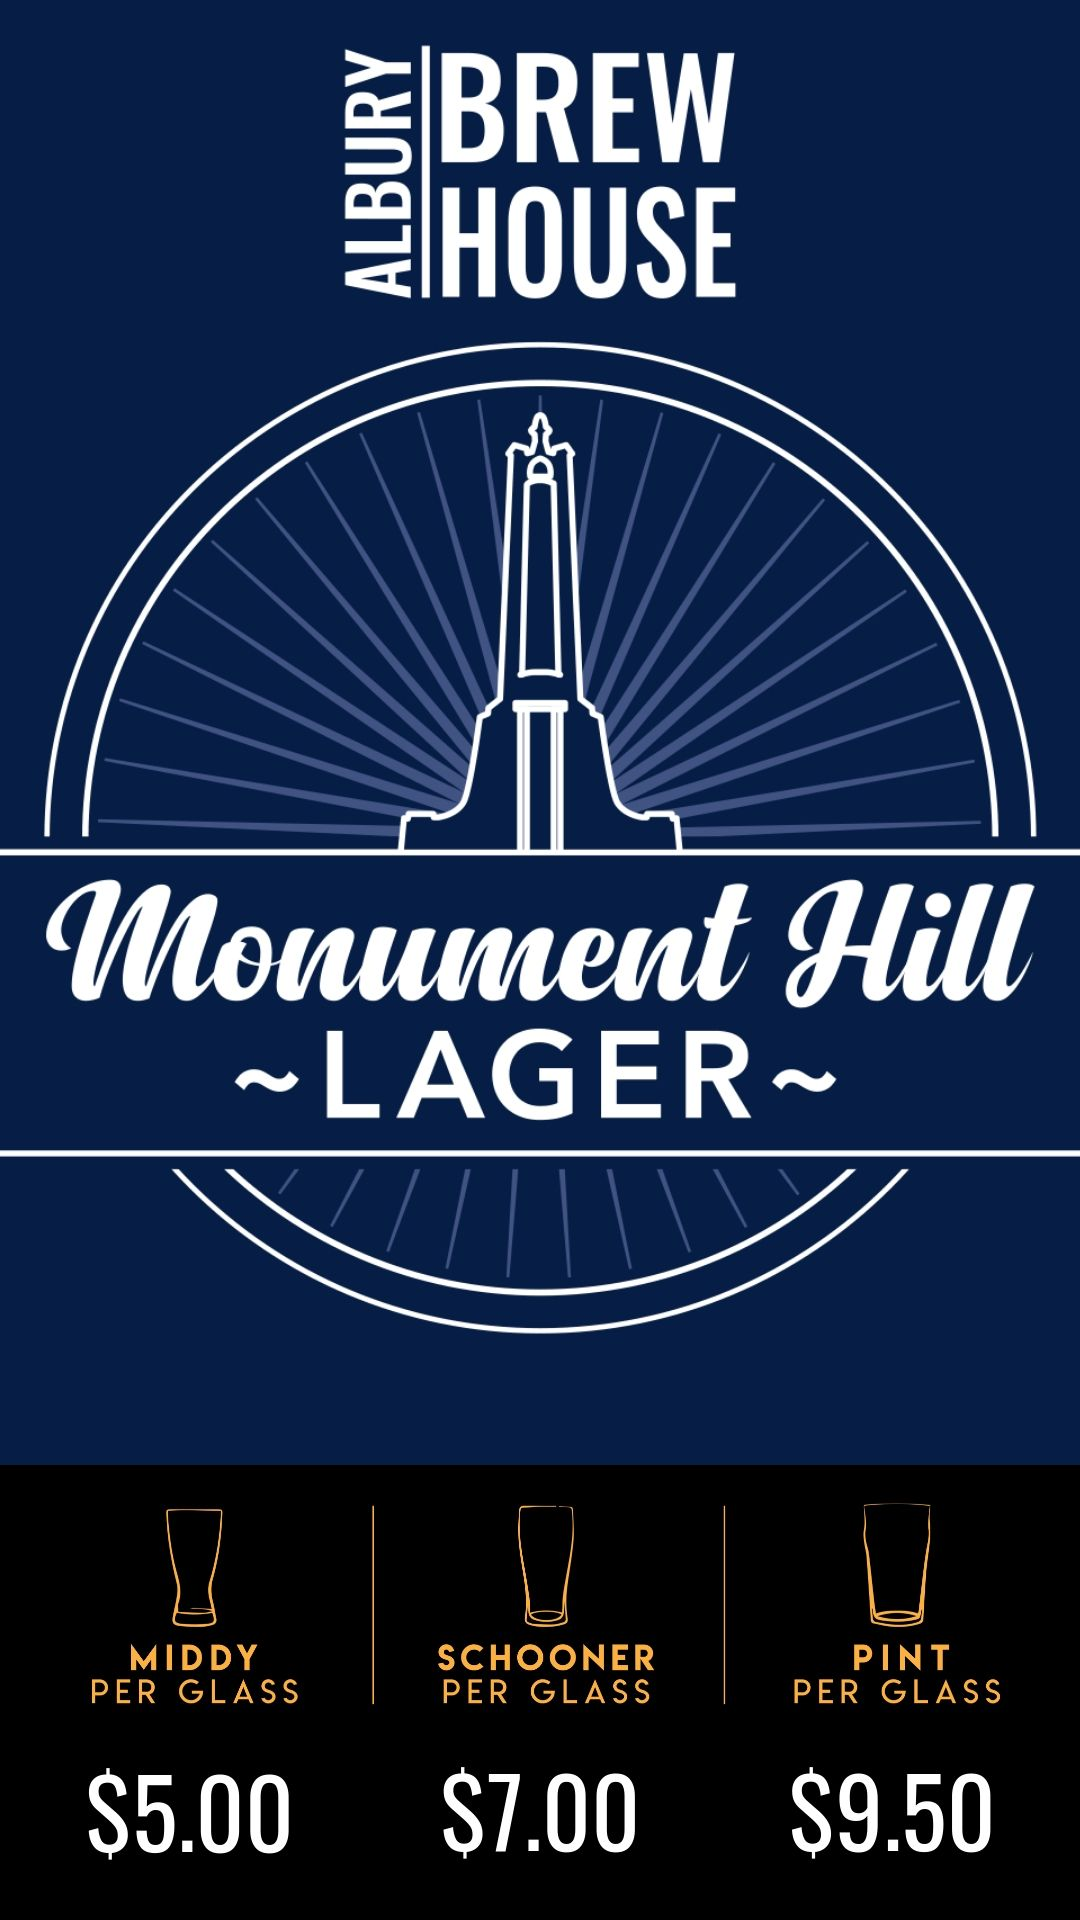 Easy drinking continental lager - clean and balanced flavour profile with just the slightest hint of malt and mild herbal hop aroma, from the noble hop varietal Hallertauer Mittelfruh